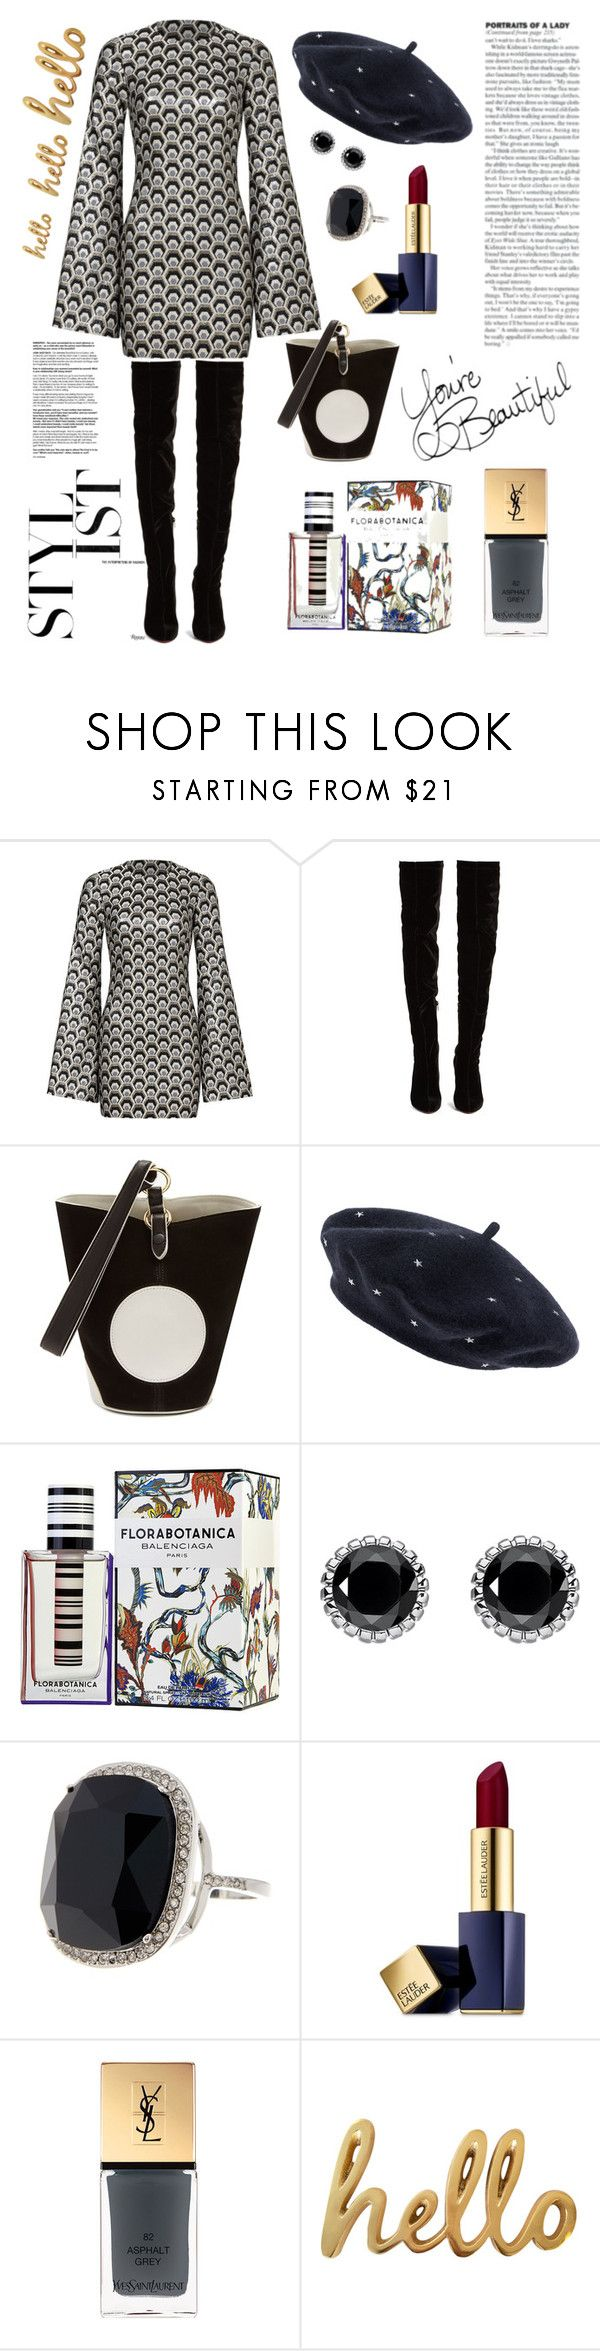 """Salut!"" by waltos ❤ liked on Polyvore featuring Rubin Singer, Christian Louboutin, Diane Von Furstenberg, Accessorize, Balenciaga, Thomas Sabo, Ariella Collection, Estée Lauder, Yves Saint Laurent and Bombay Duck"